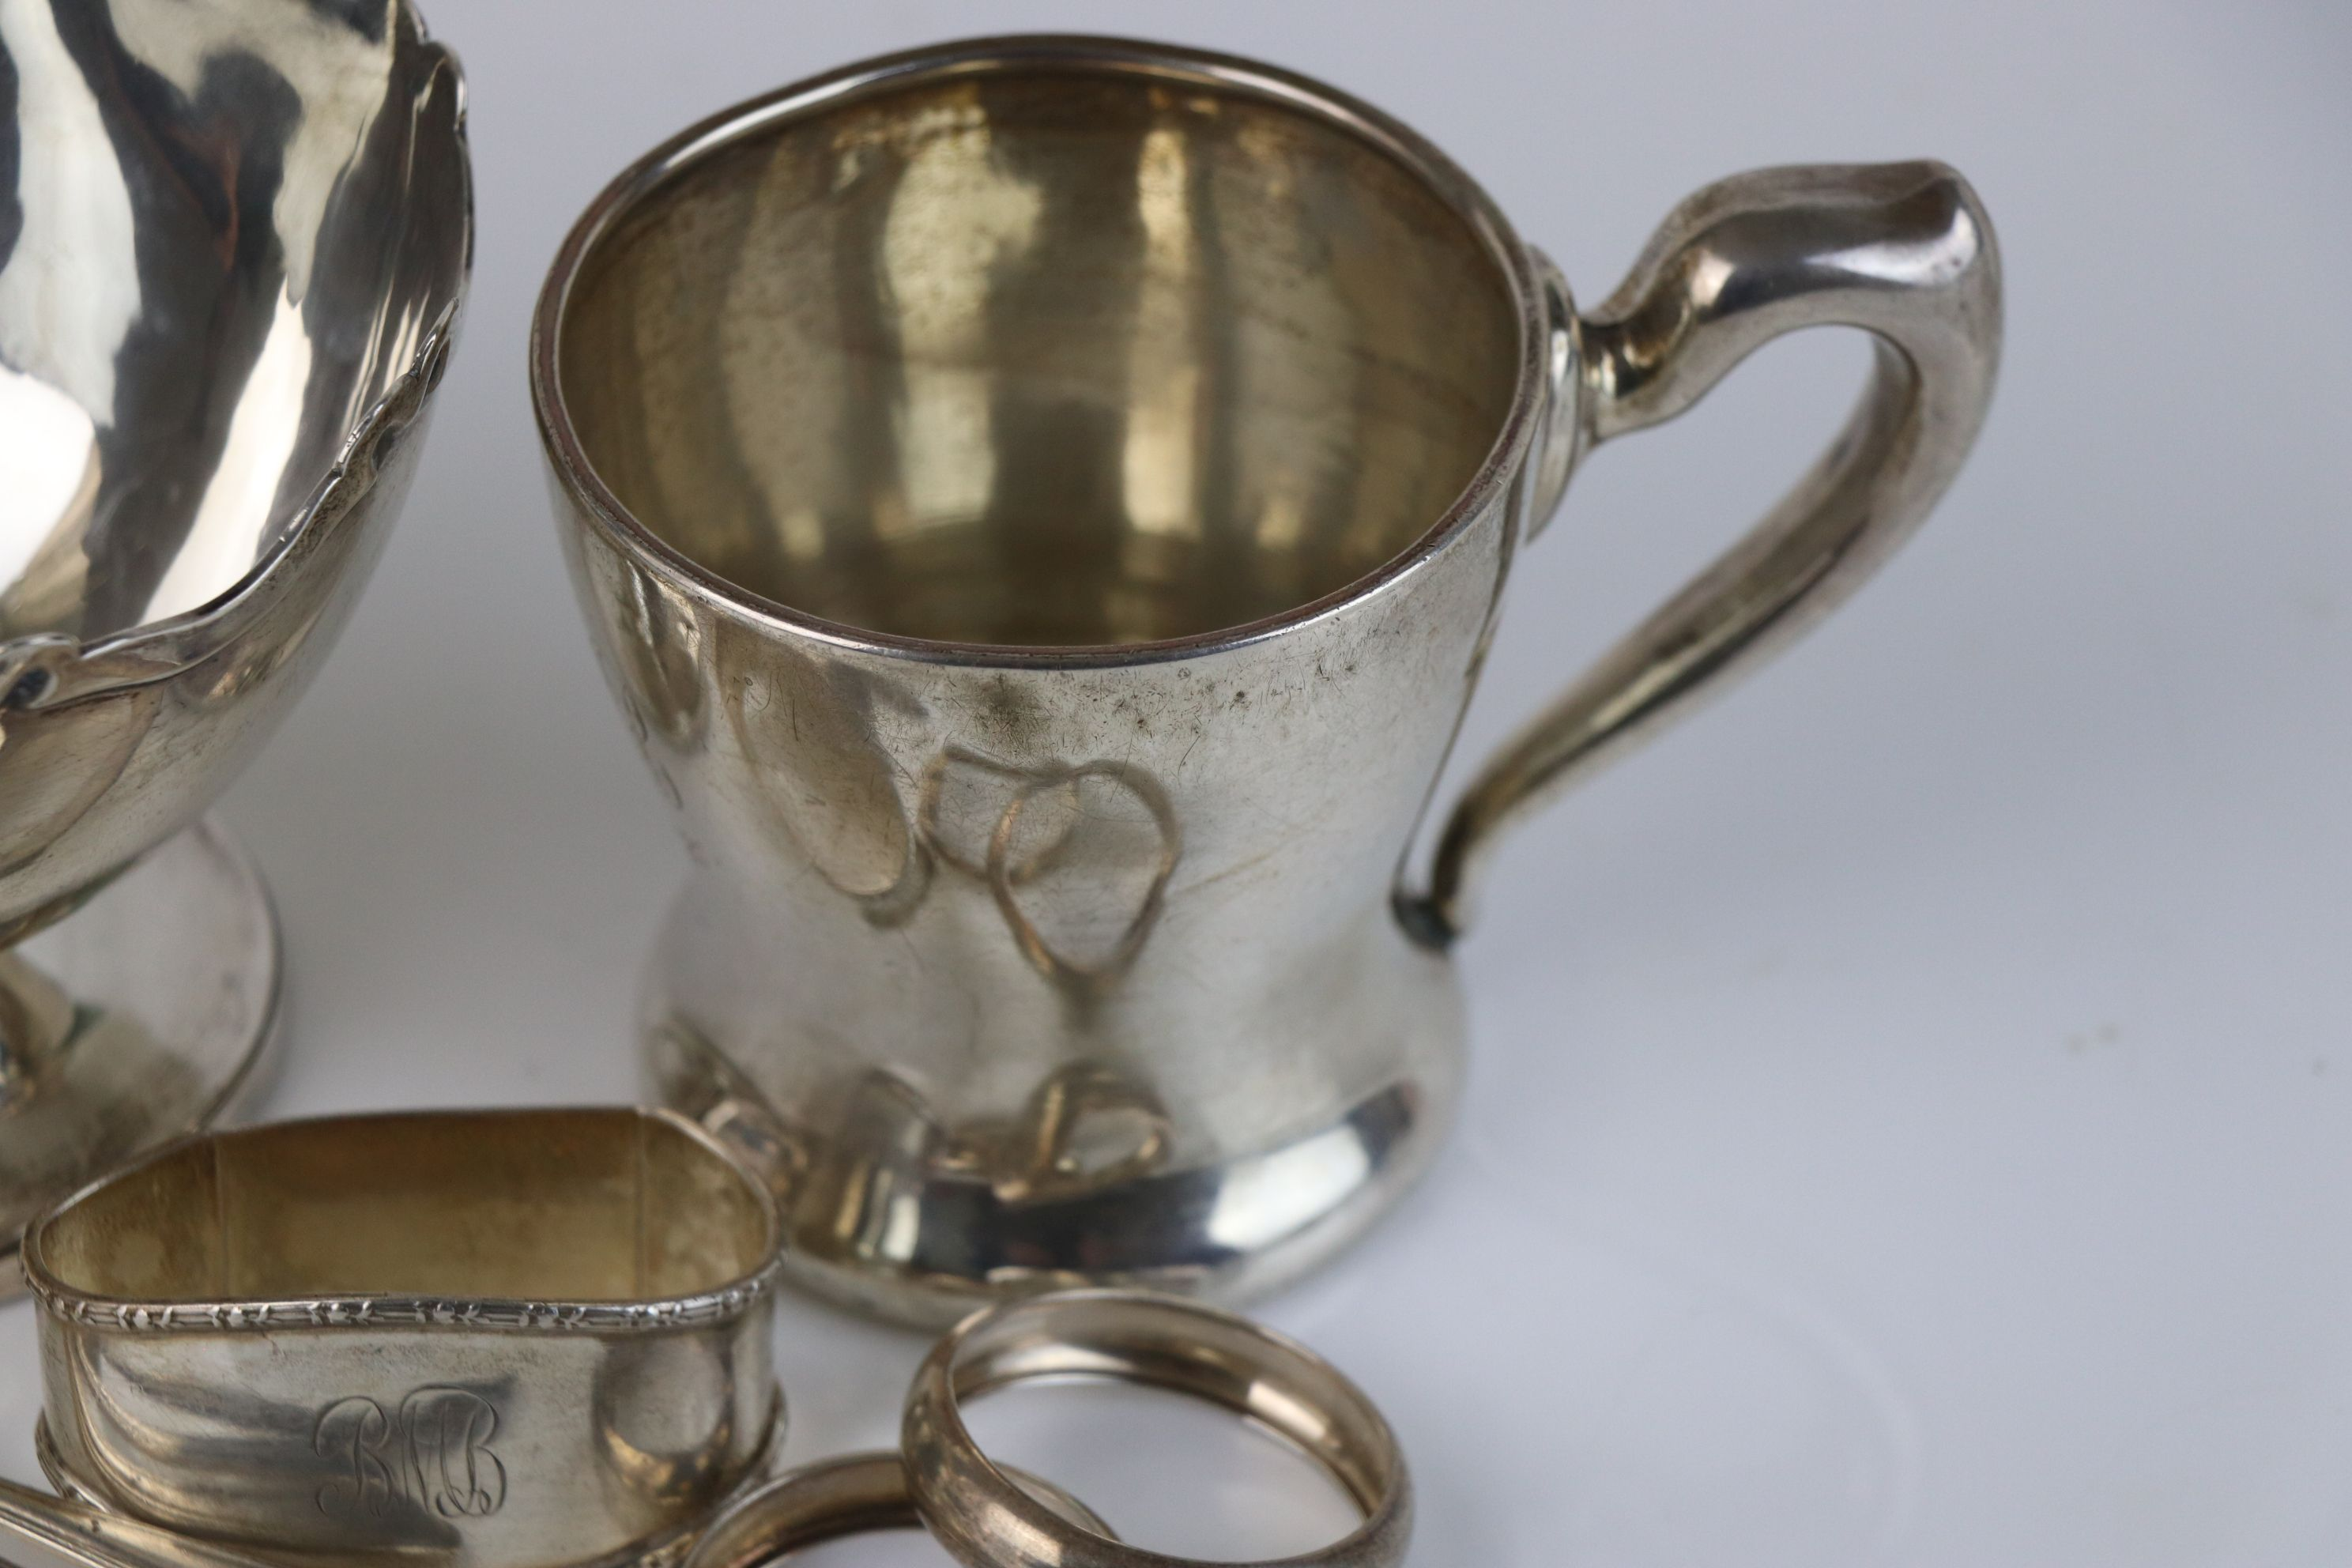 A collection of fully hallmarked sterling silver to include sugar bowl, cup, napkin rings and - Image 2 of 6